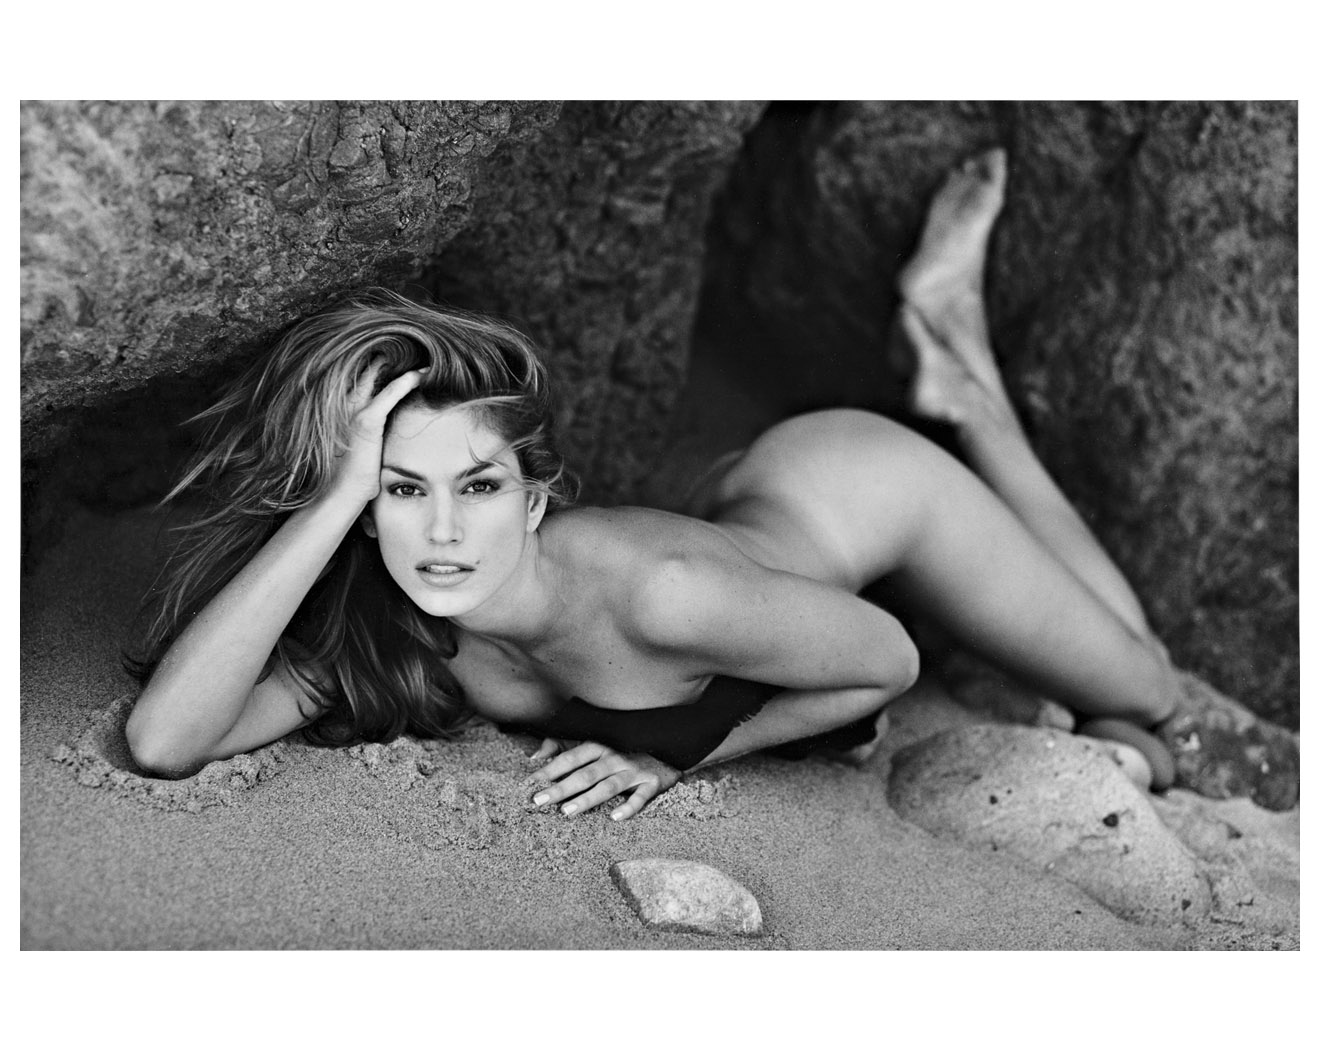 cindy-crawford-malibu-california-1995-copia